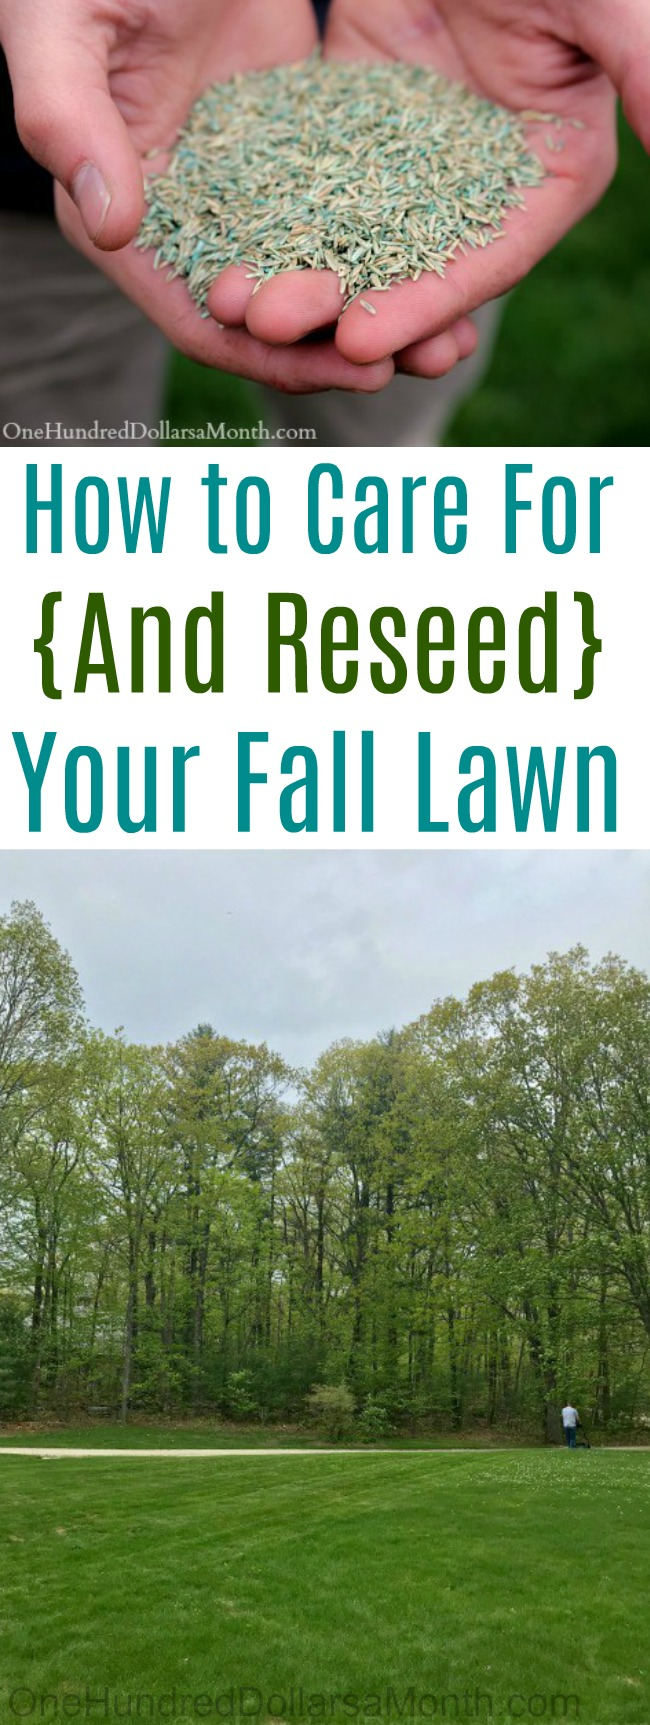 How to Care For {And Reseed} Your Fall Lawn